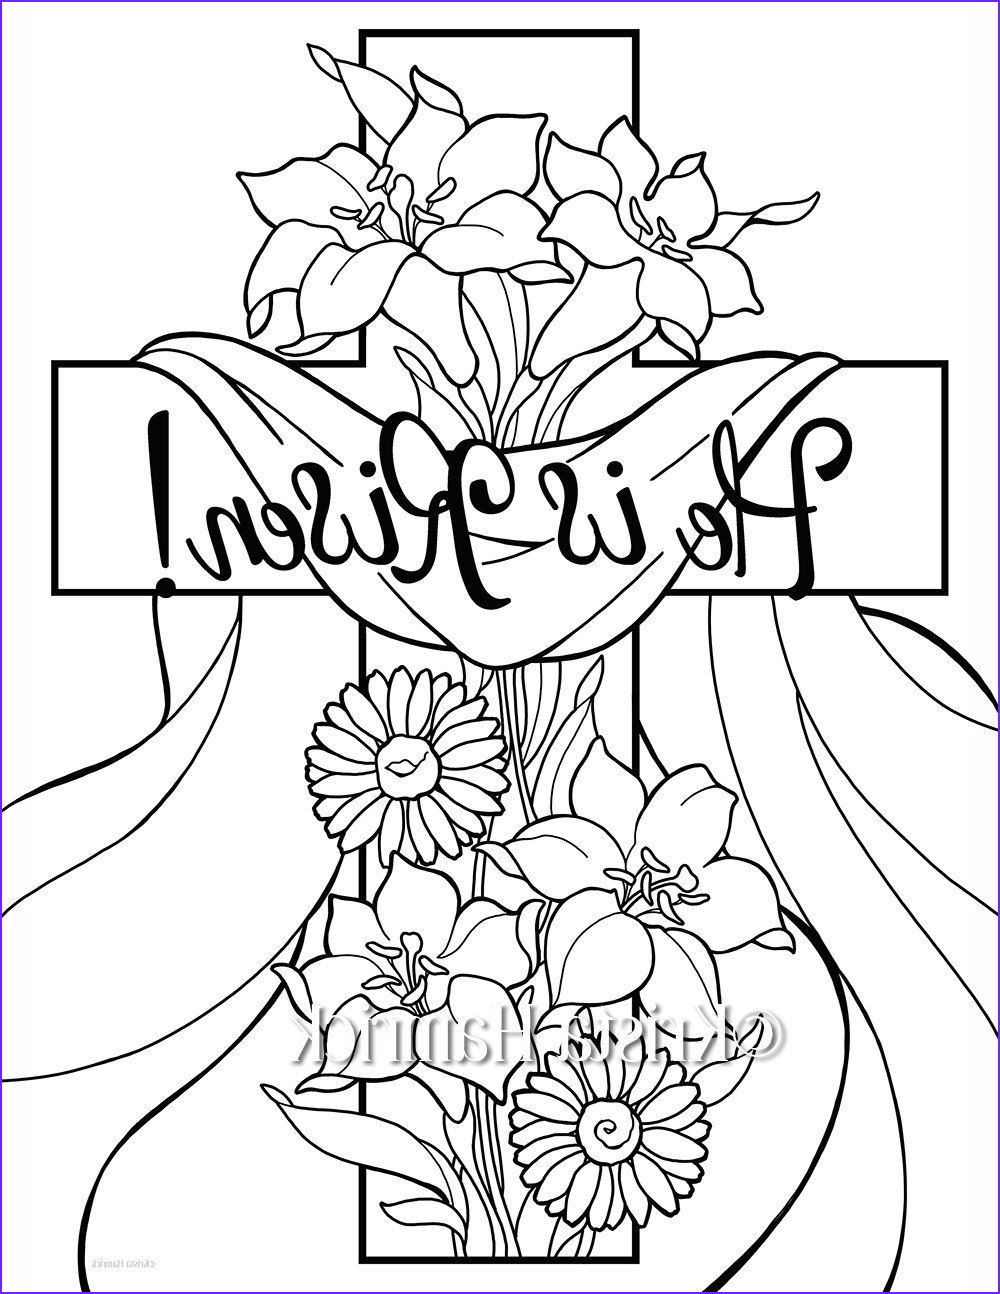 Free Religious Easter Coloring Page New Photos He Is Risen 2 Easter Coloring Pages For Children